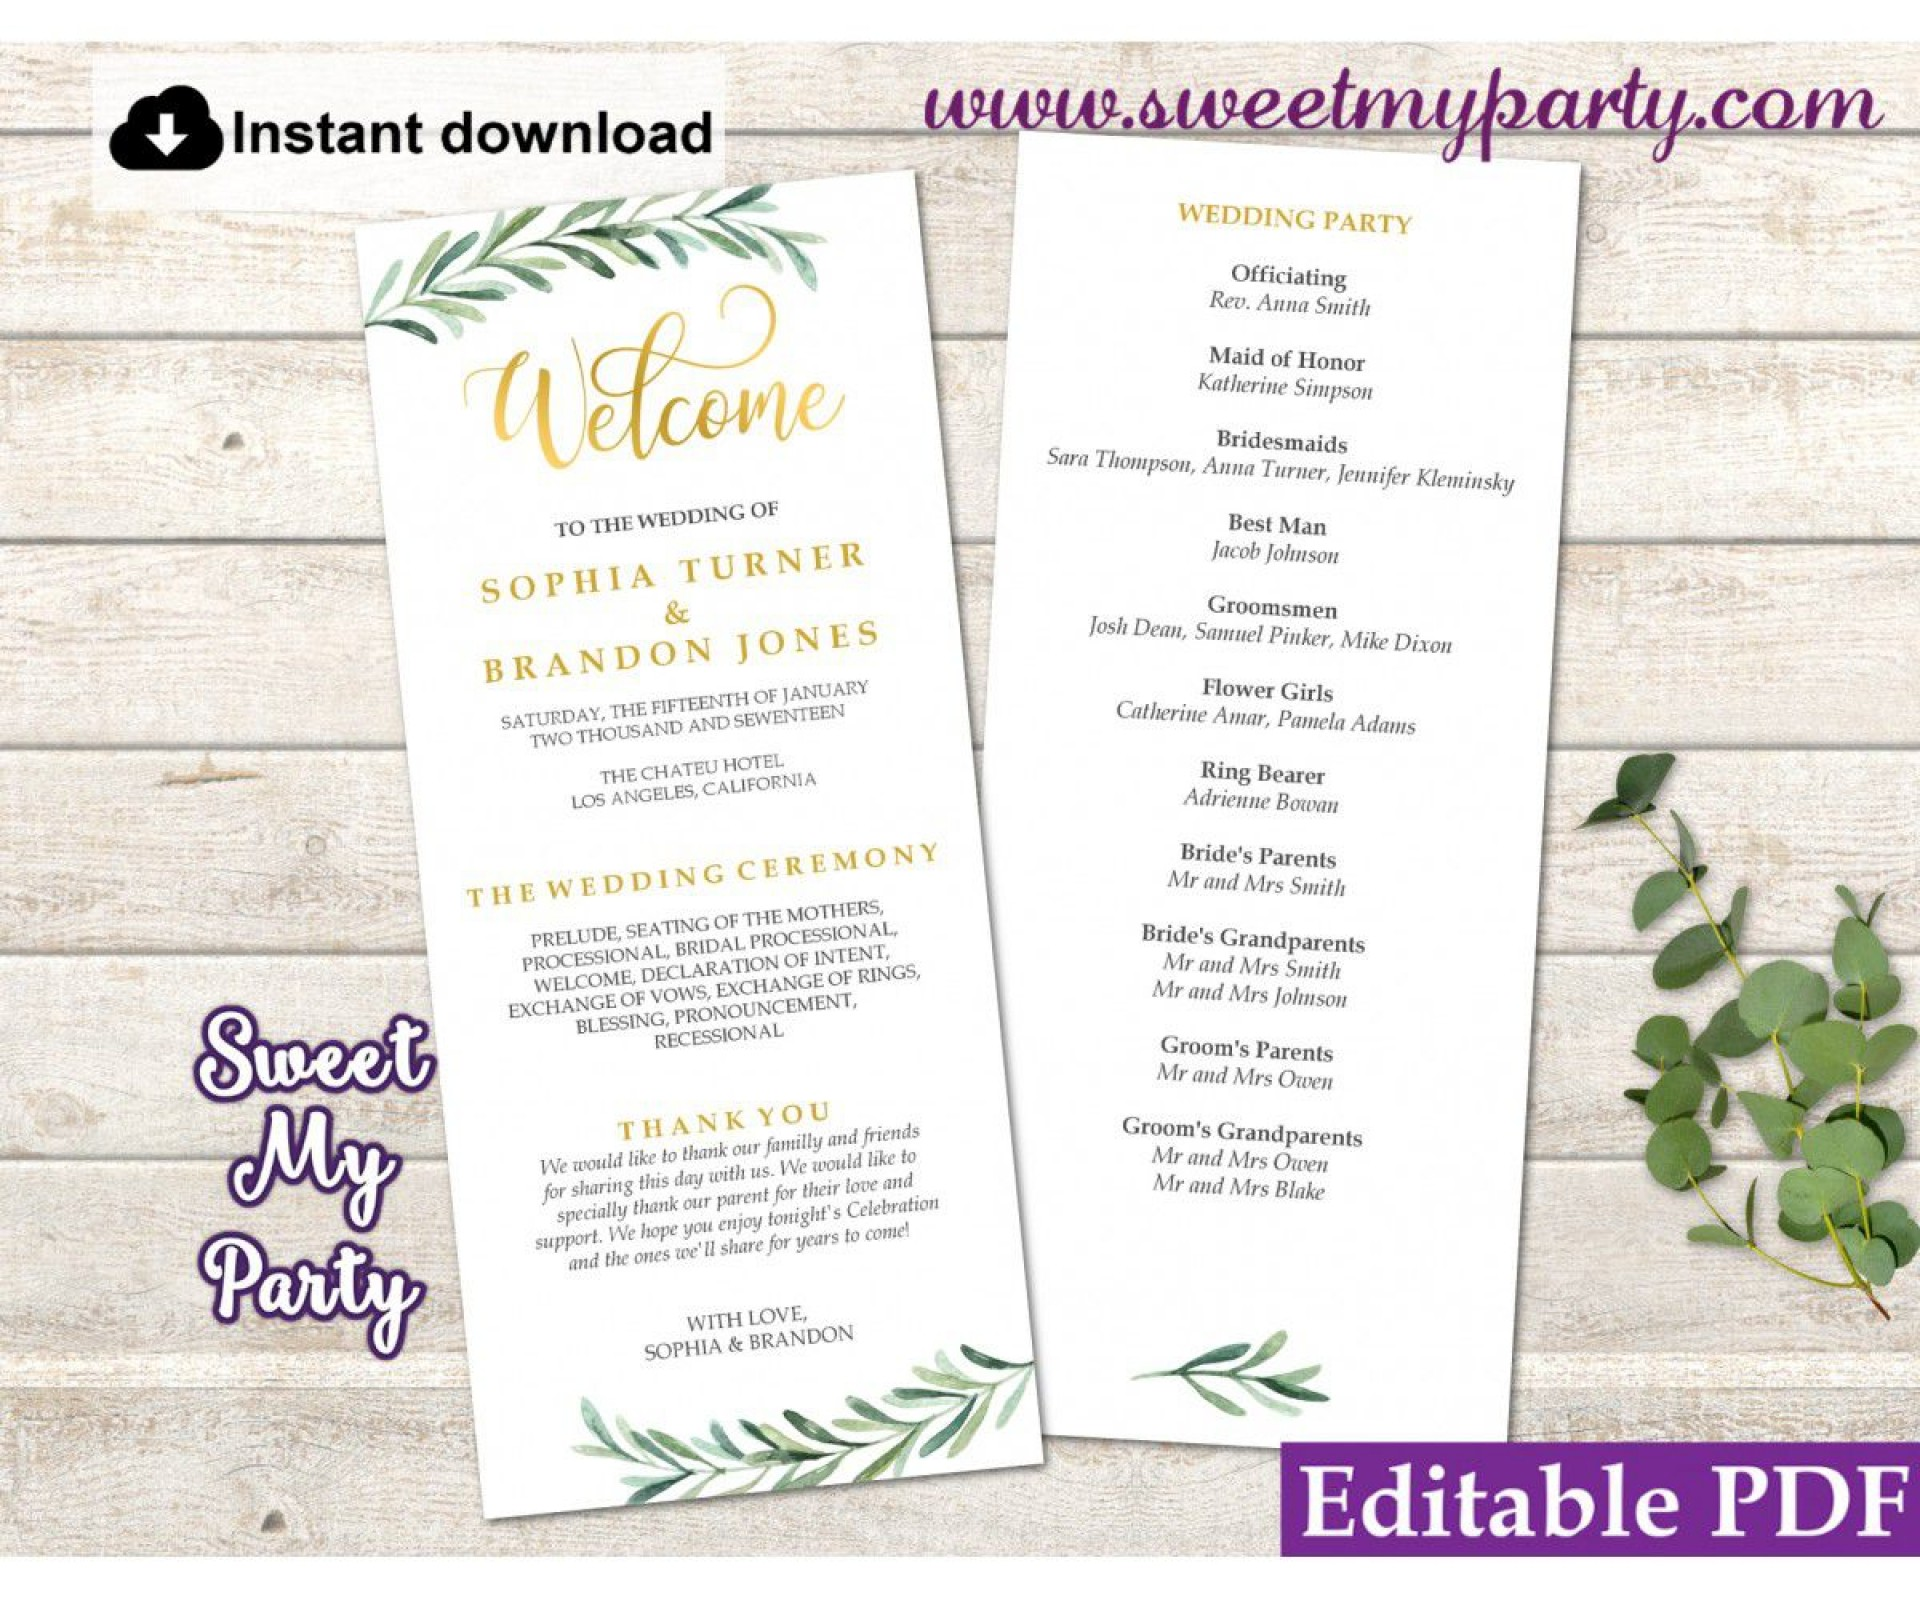 004 Phenomenal Wedding Order Of Service Template Highest Clarity  Pdf Publisher Microsoft Word1920